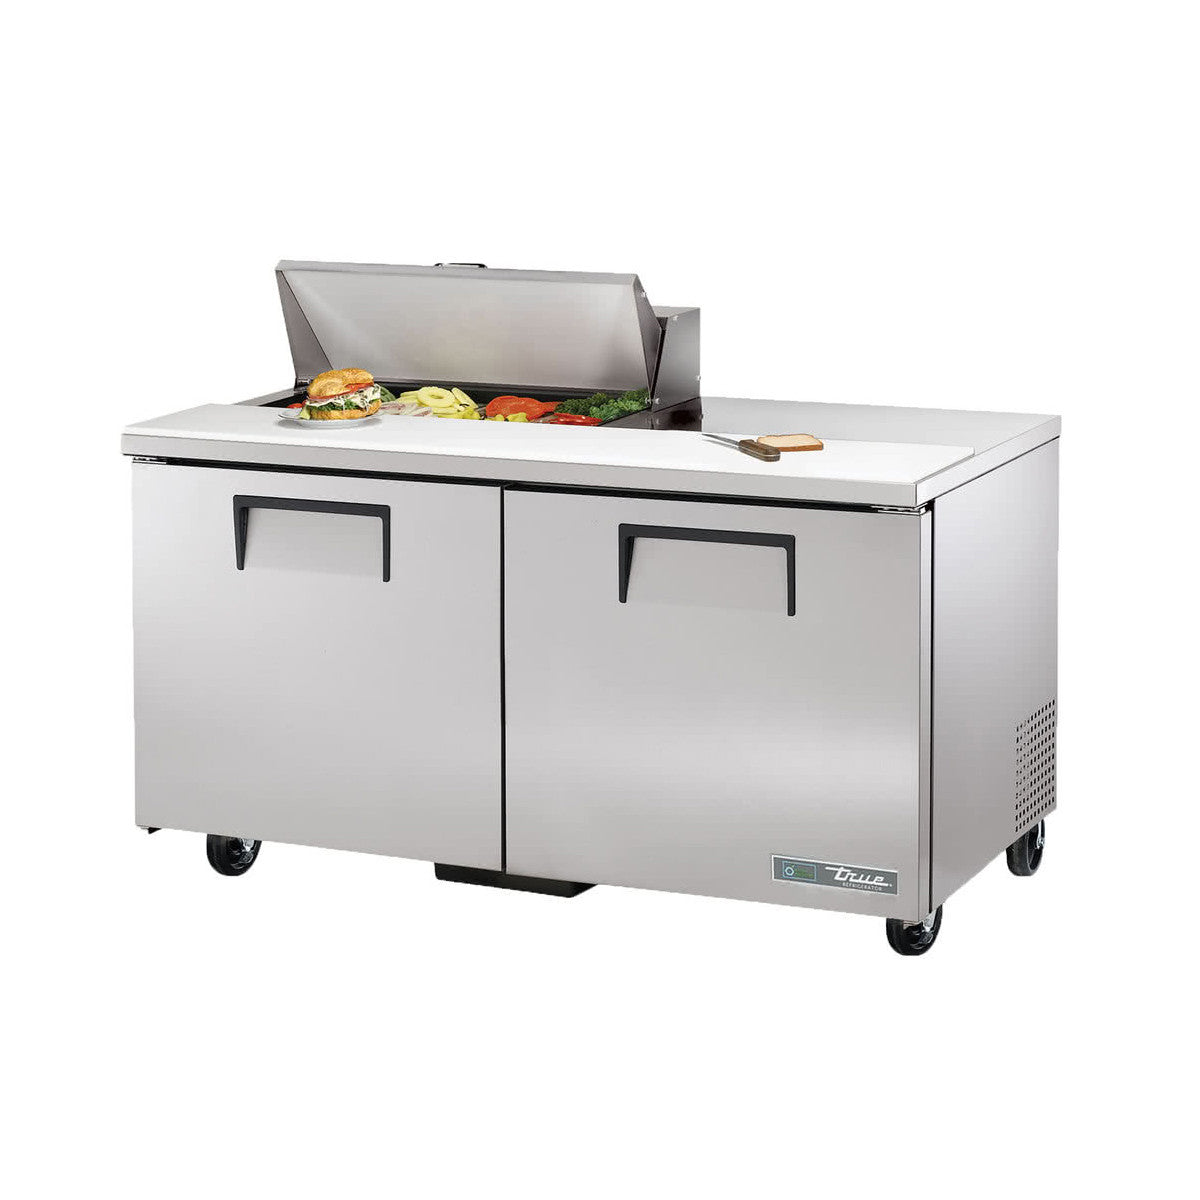 True TSSUHC Pan Refrigerated Sandwich Prep Table - True refrigerated prep table